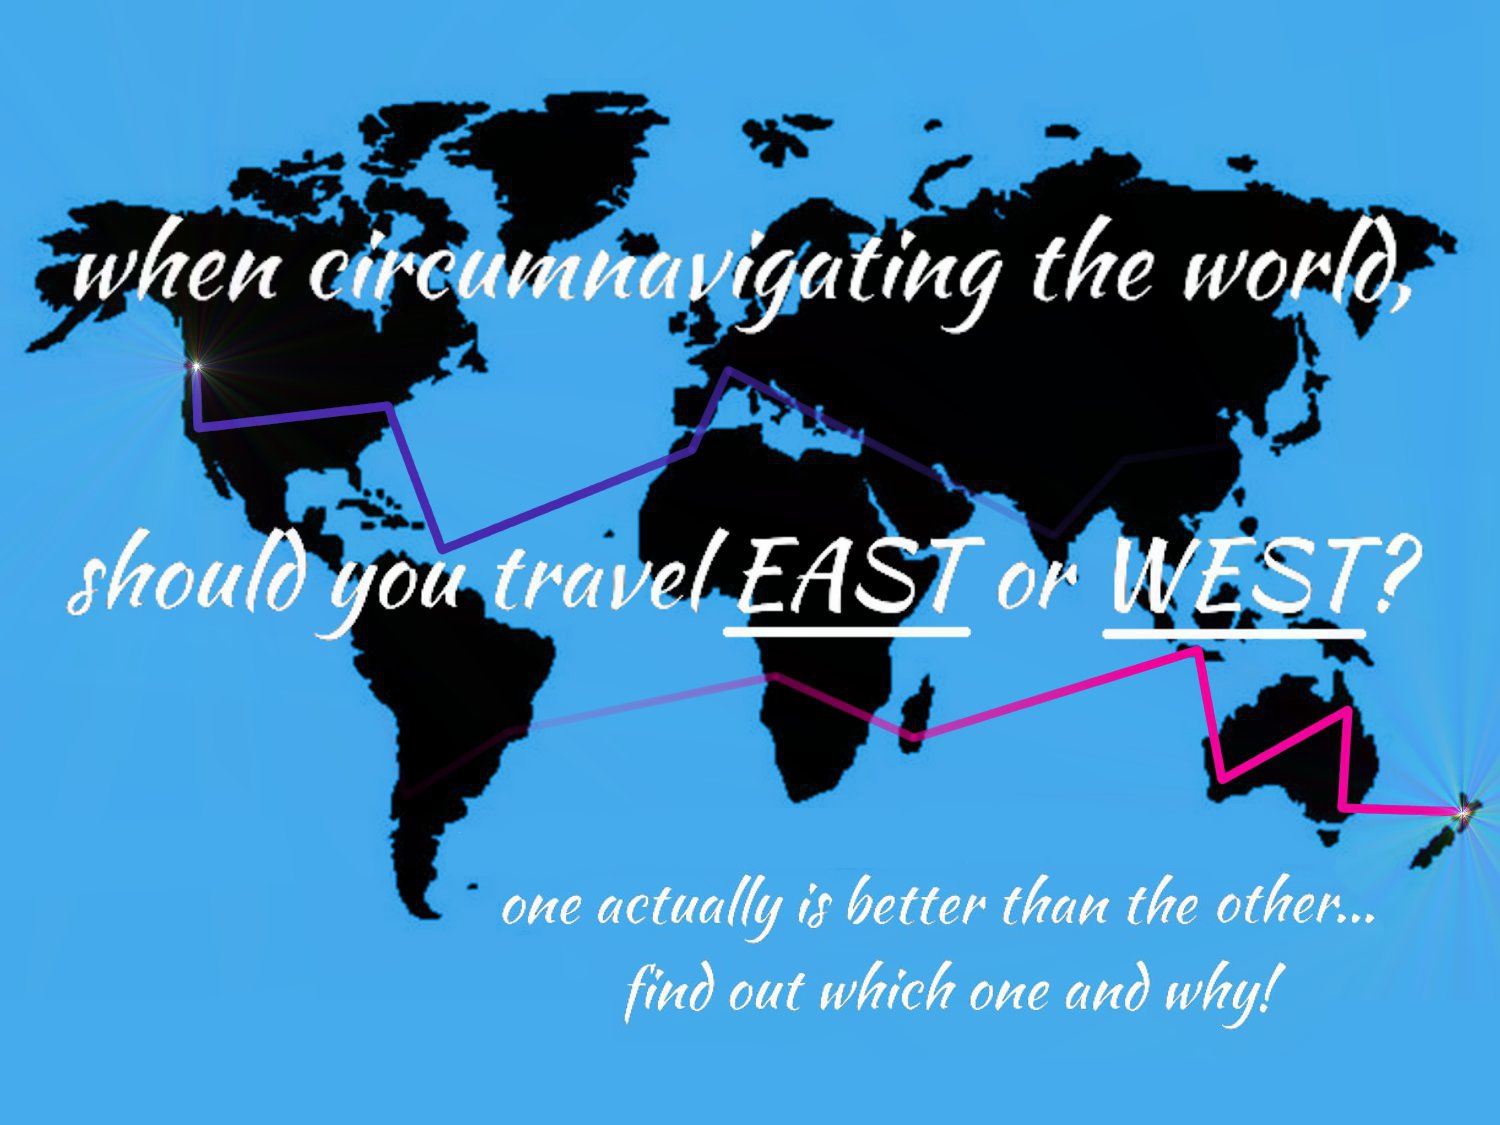 When circumnavigating the world, which direction is better to travel? EAST or WEST? | HOLE STORIES